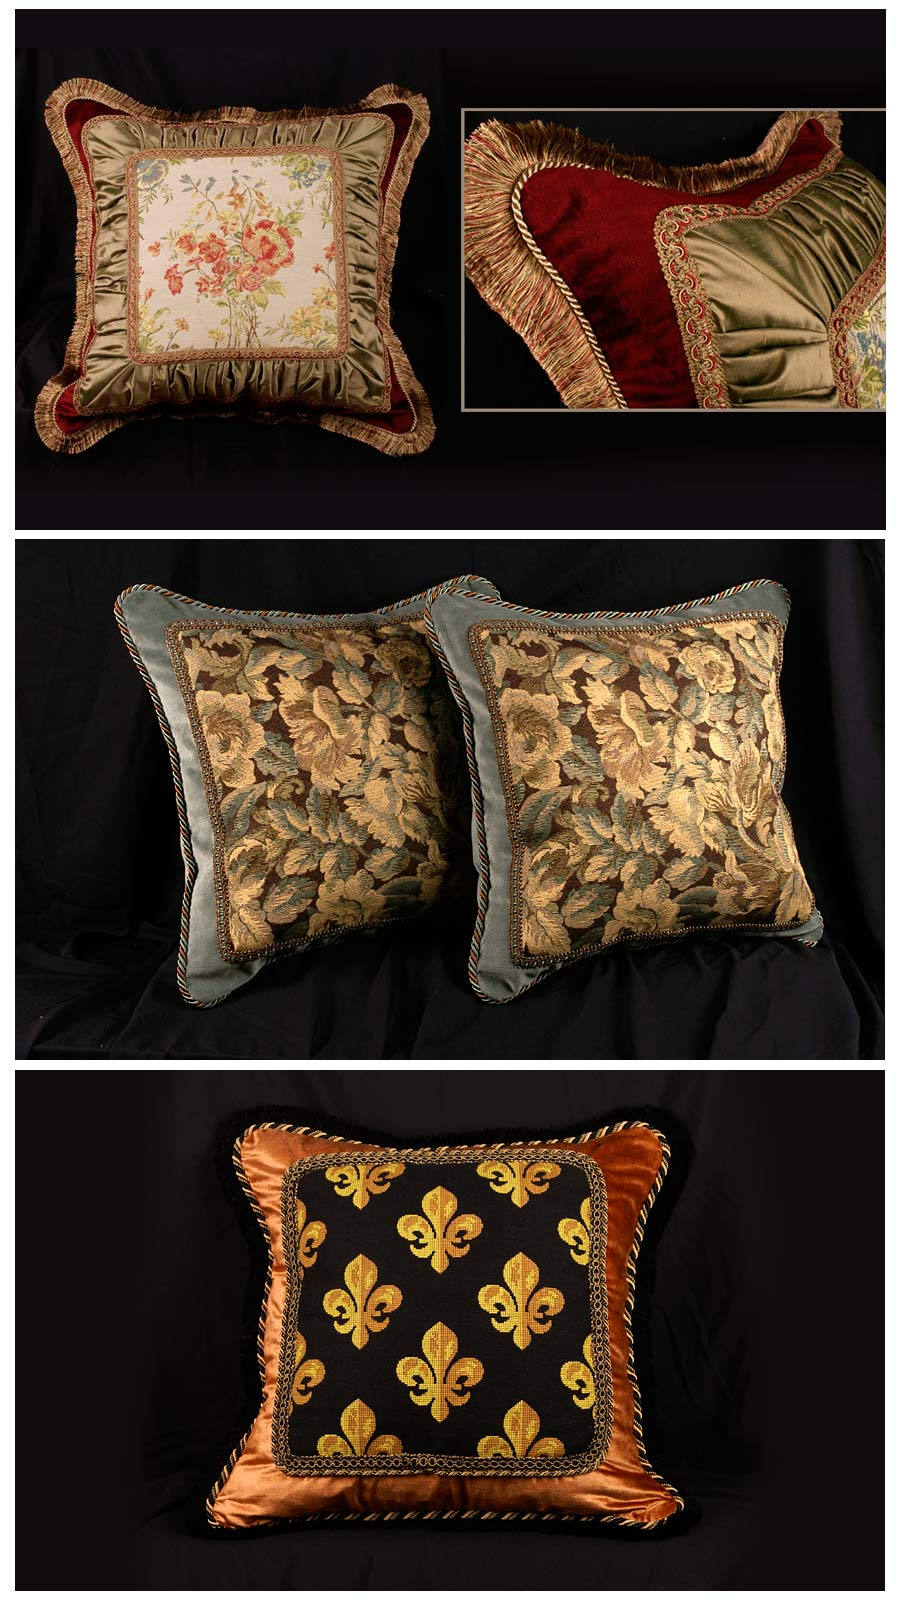 Anatomy Of A Decorative Pillow Part 1 Pillow Designs